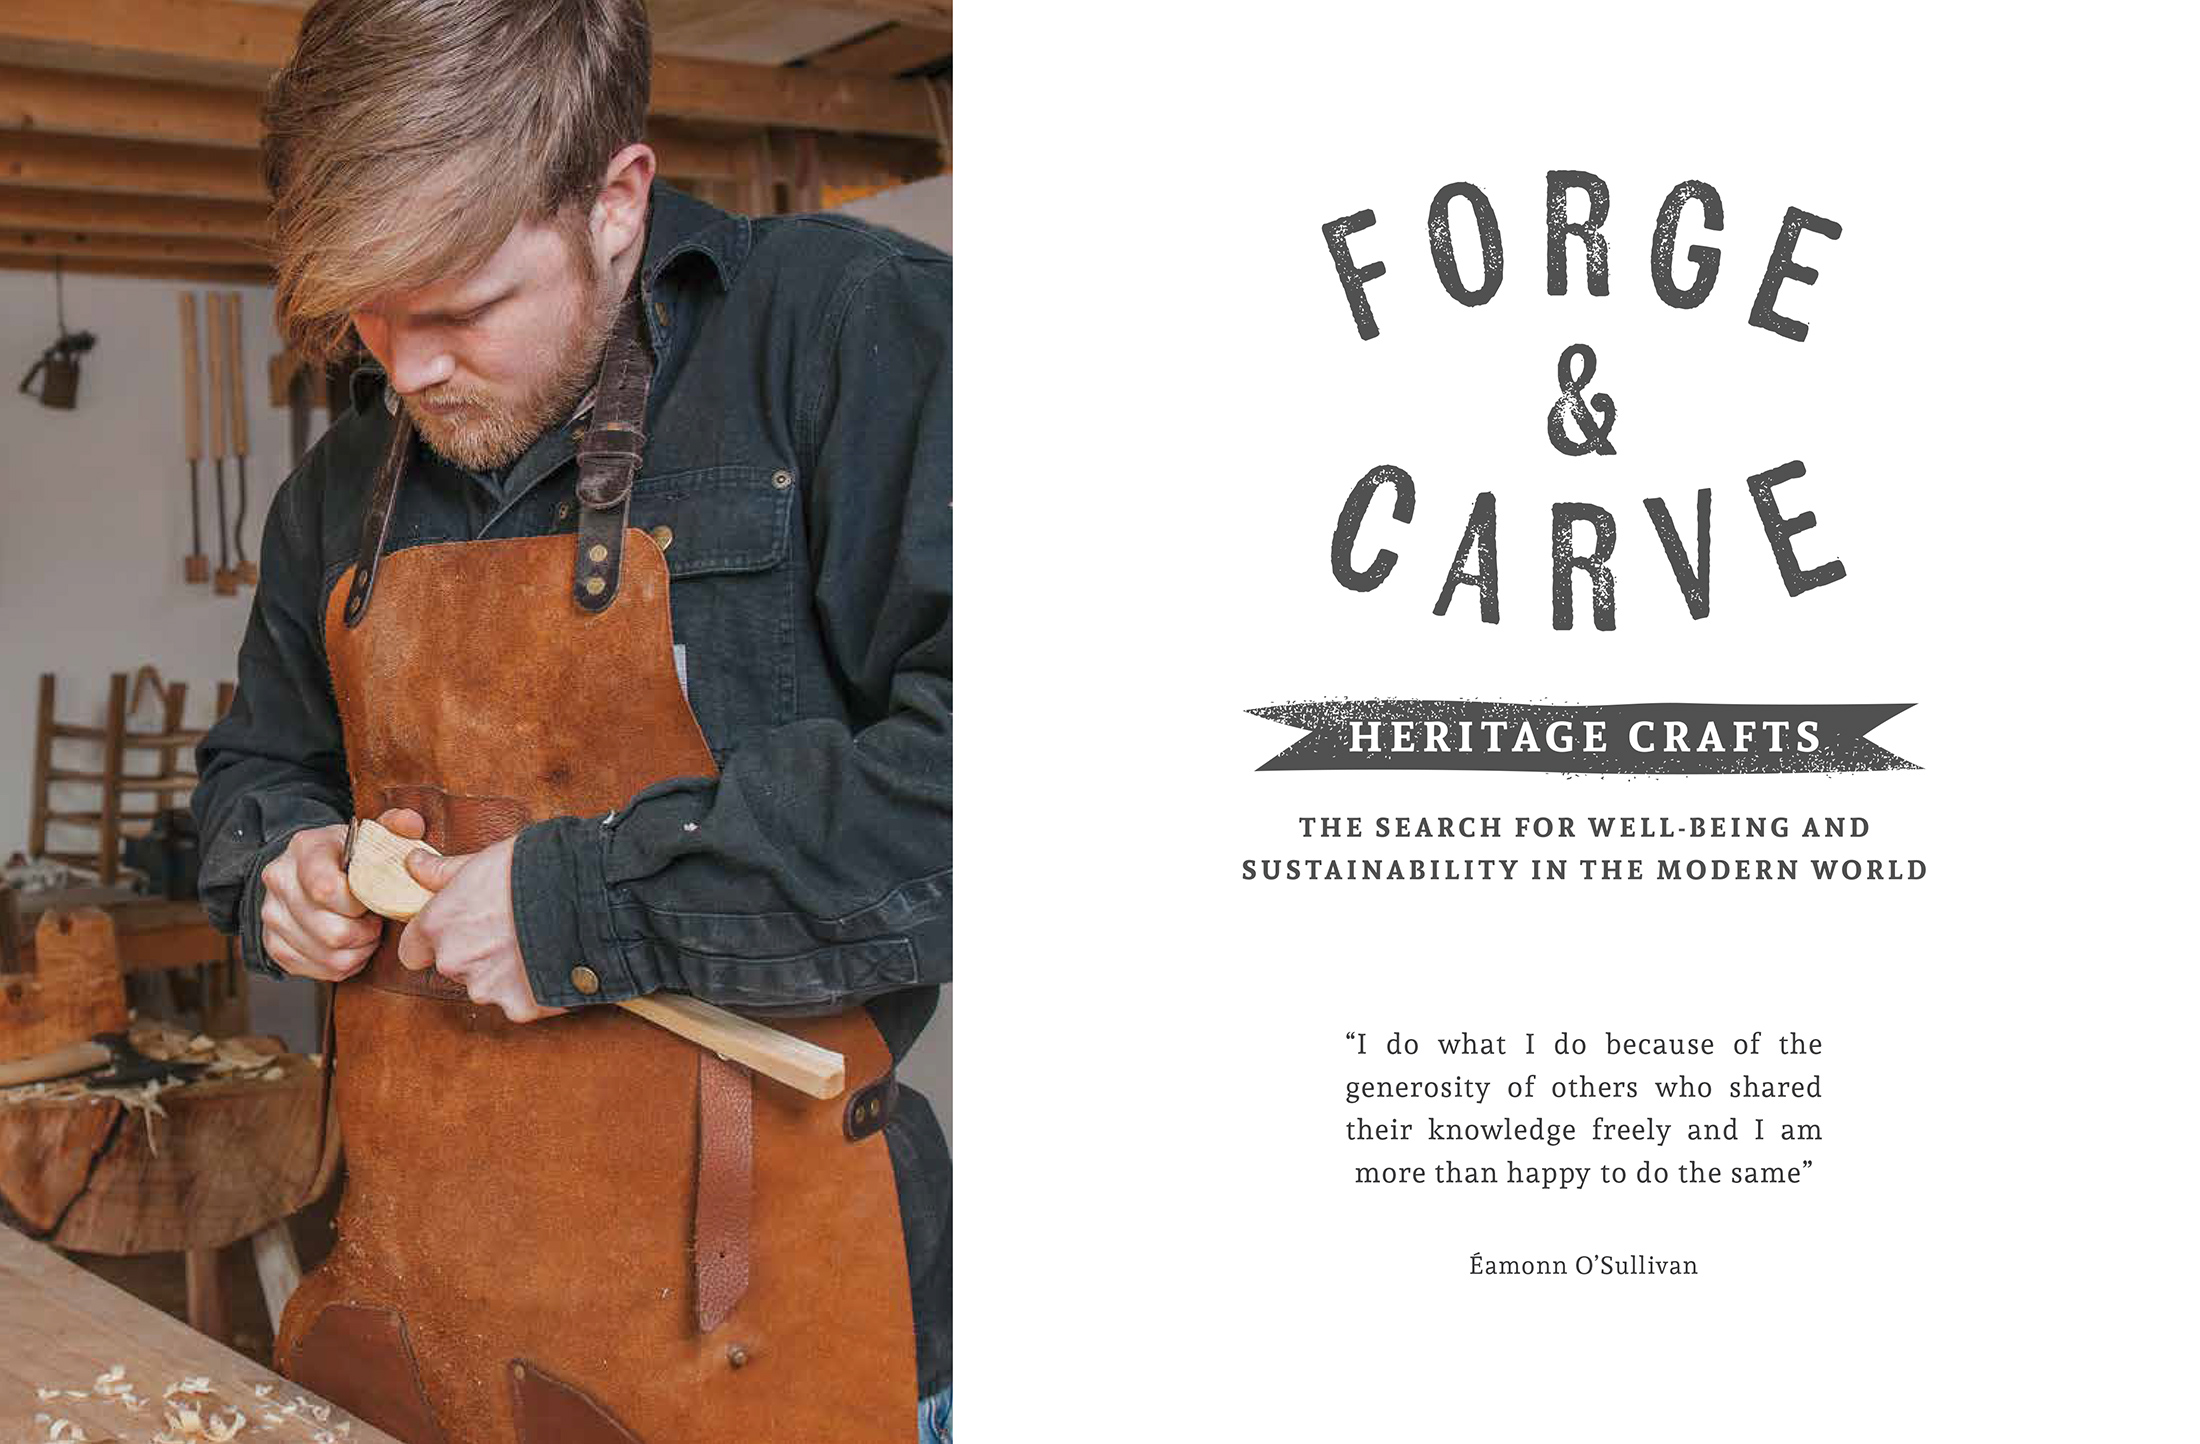 Forge-and-Carve-Tearsheet